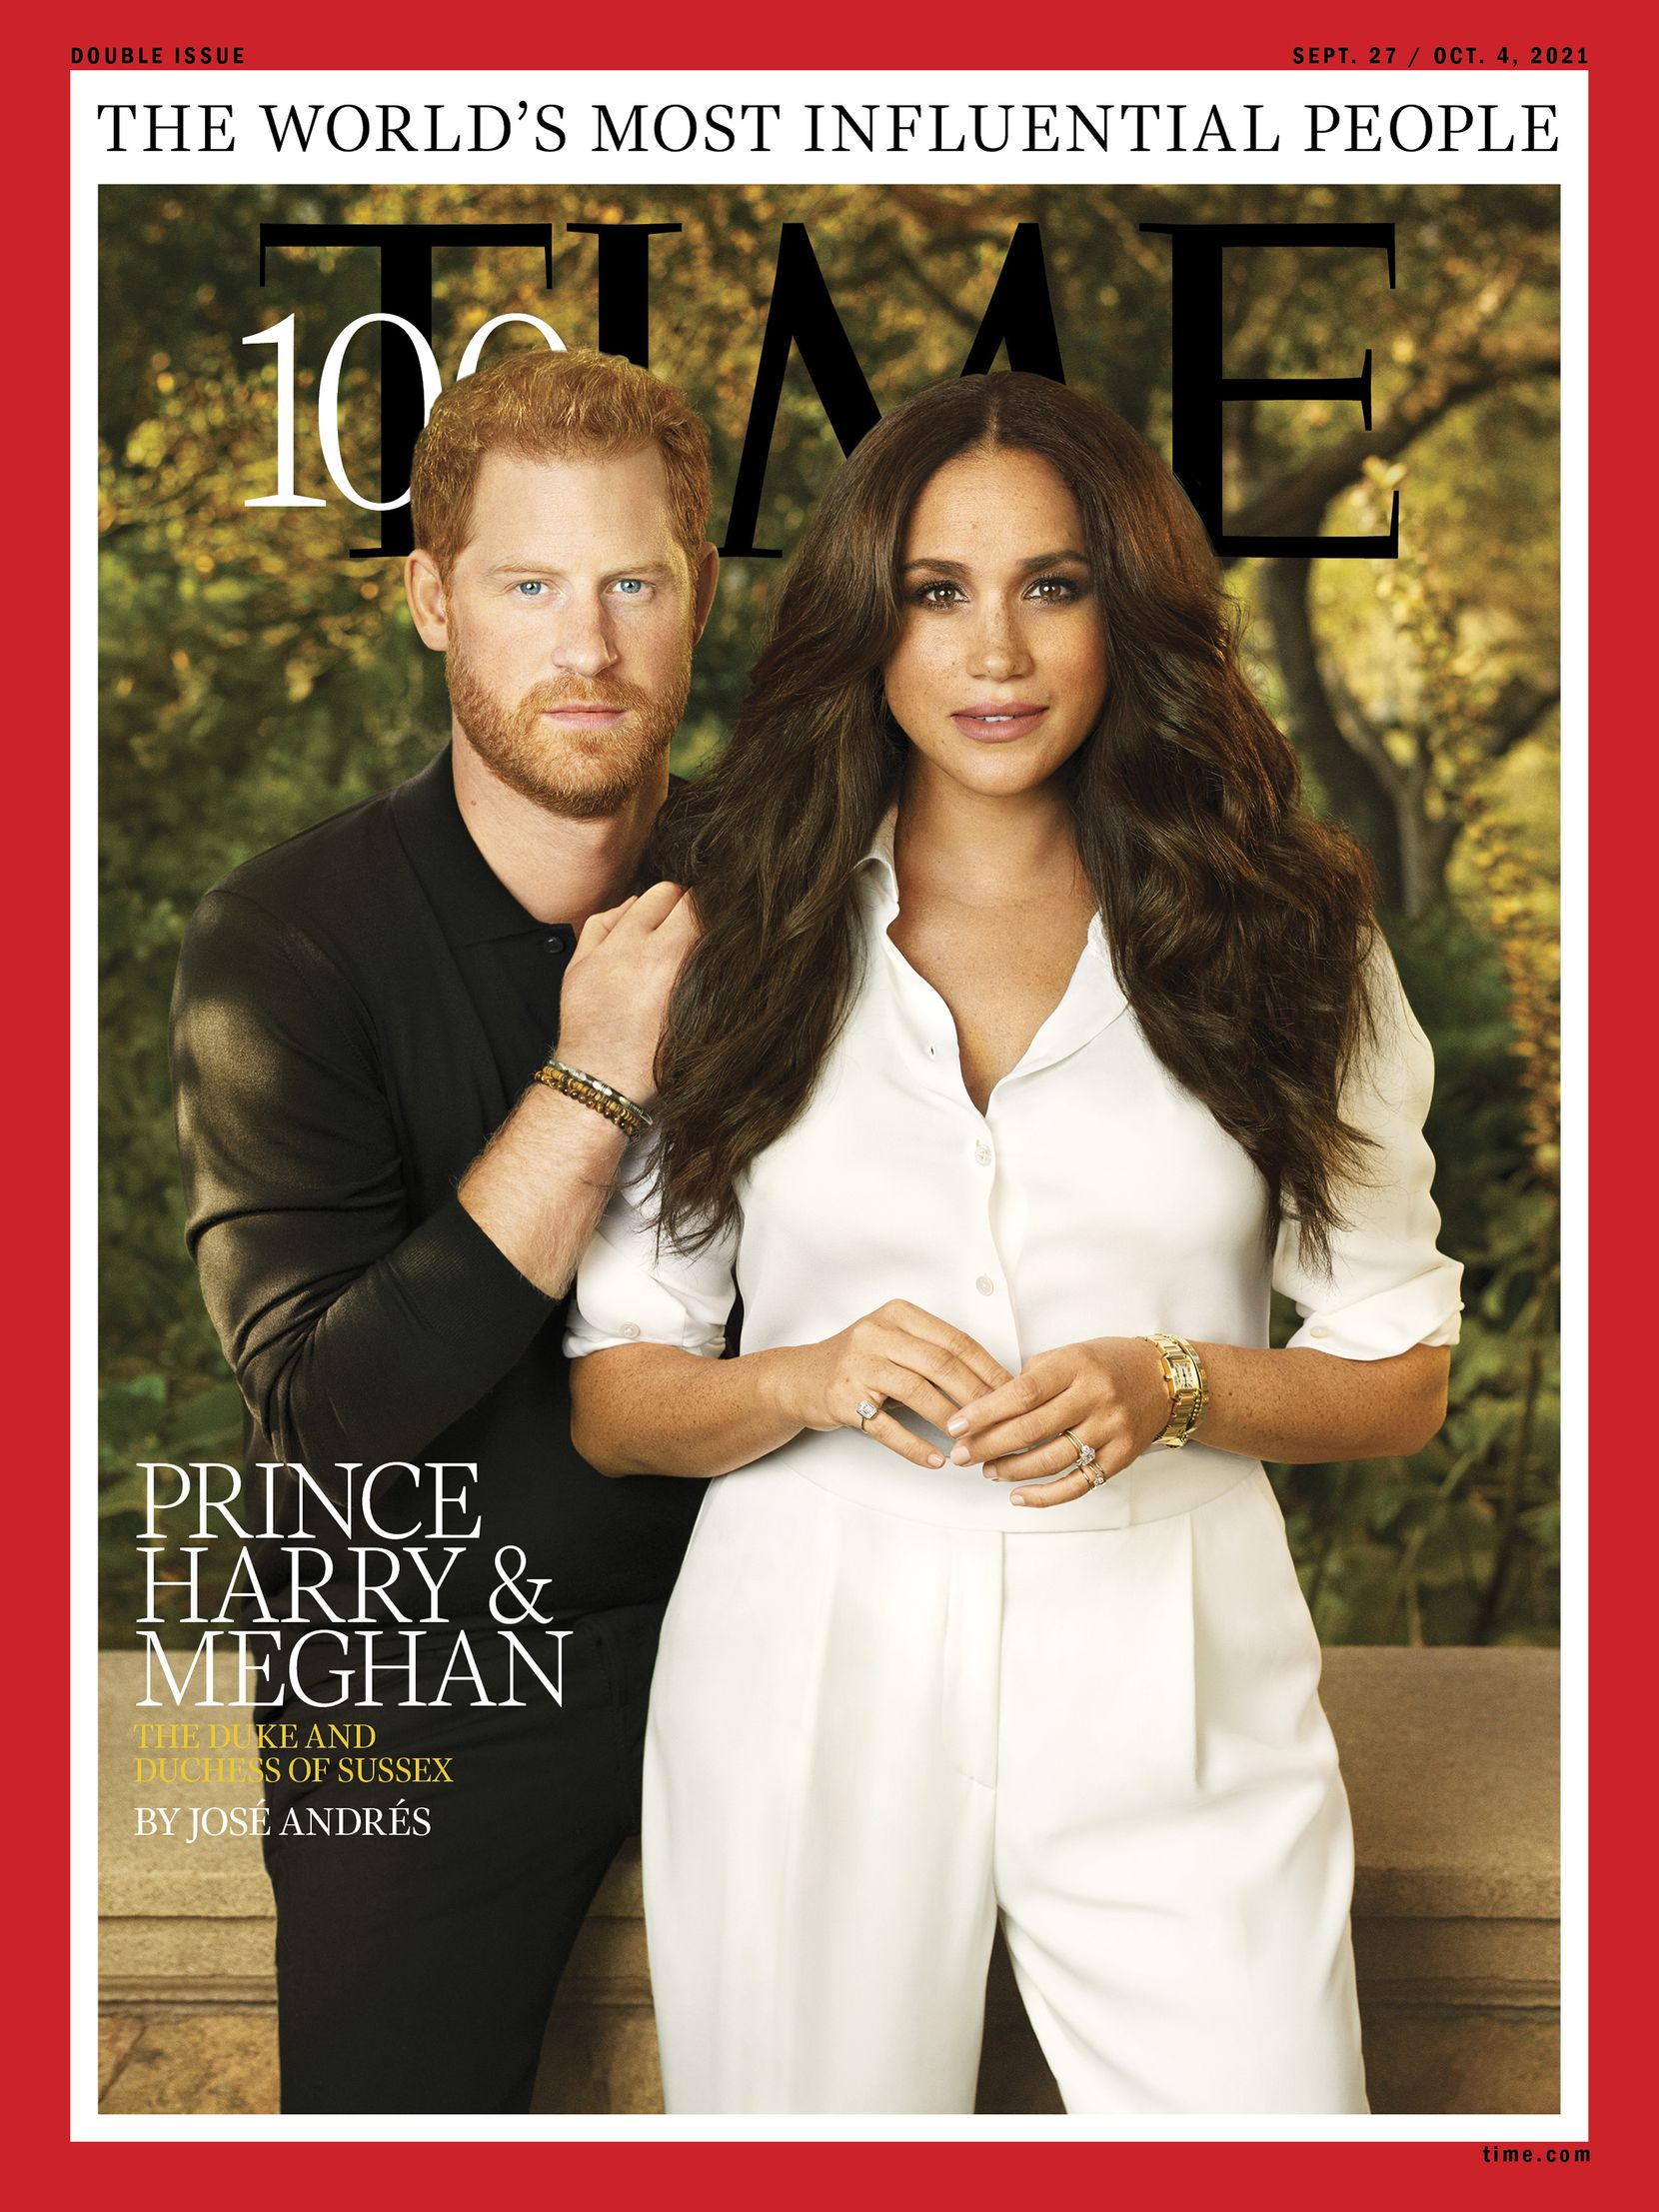 Prince Harry is wearing Kendra Scott's new Scott & Co. men's bracelets on this Time magazine cover dated Sept. 27.